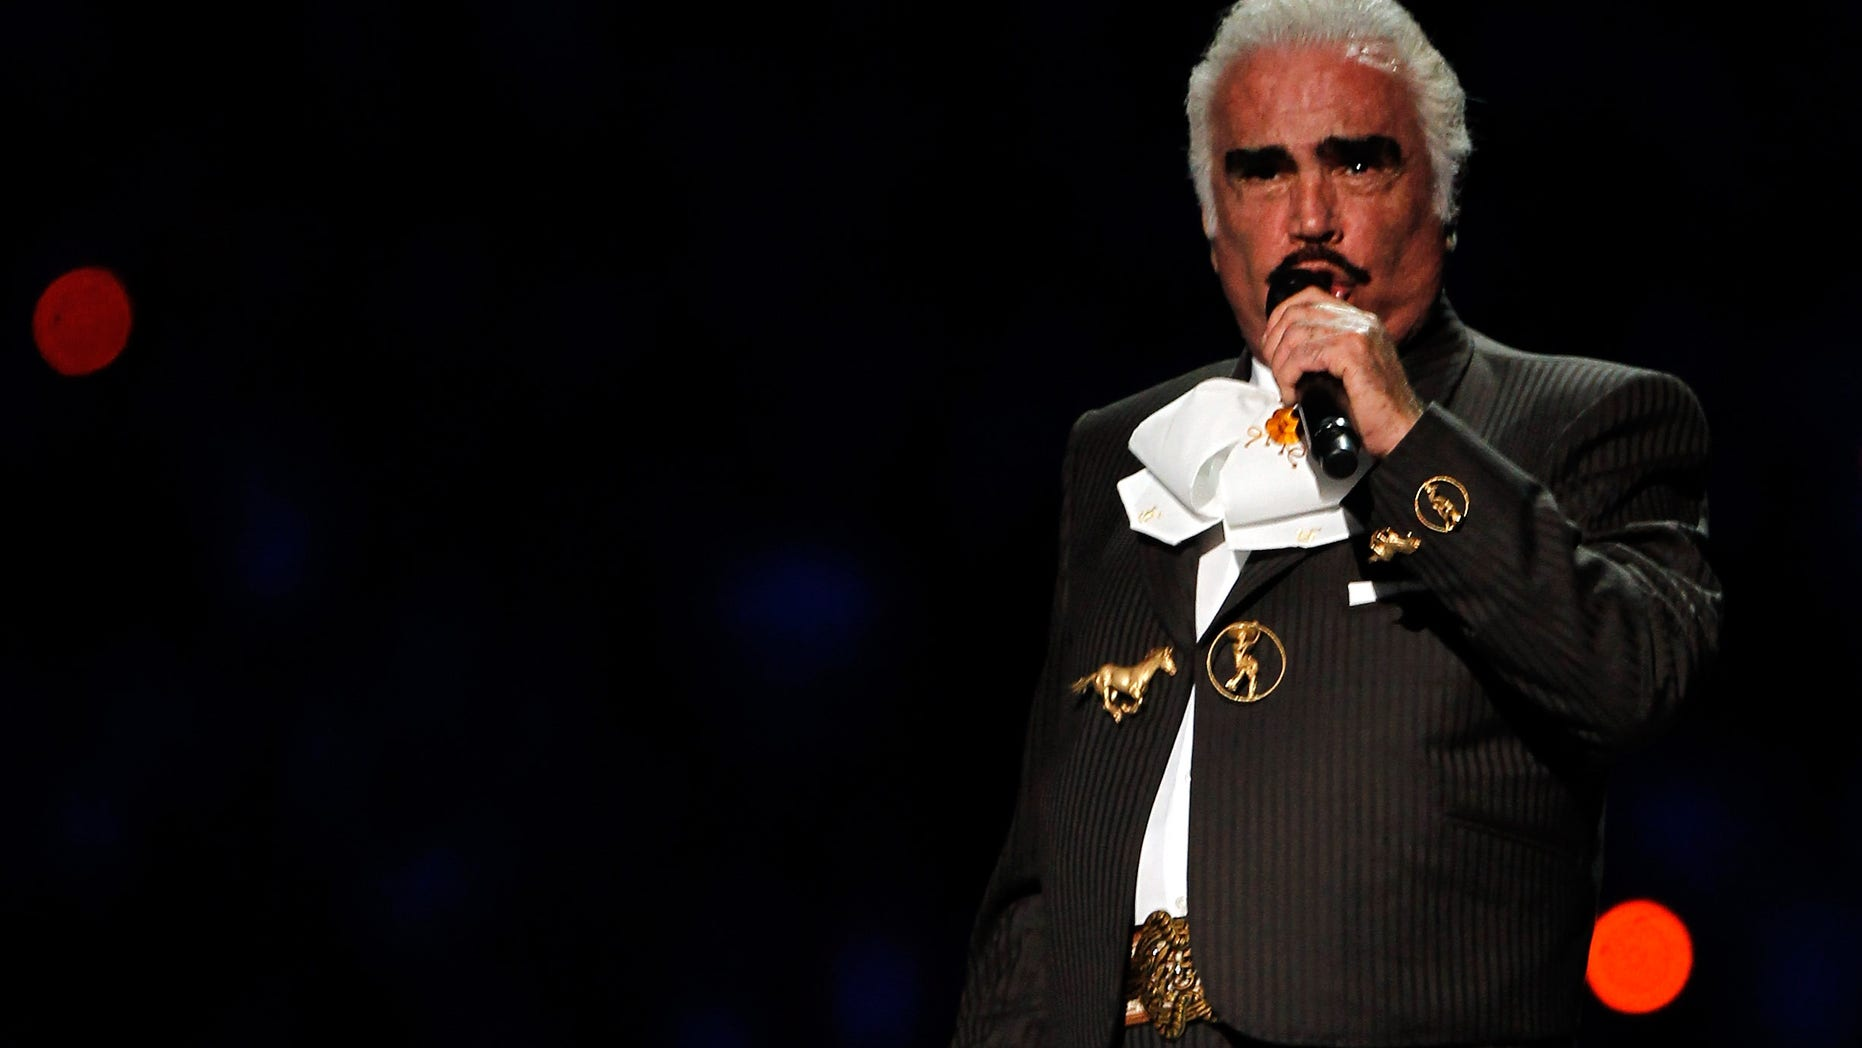 GUADALAJARA, MEXICO - OCTOBER 14:  Singer Vicente Fernandez performs to start the Opening Ceremony for the XVI Pan American Games at Omnilife Stadium on October 14, 2011 in Guadalajara, Mexico.  (Photo by Mike Ehrmann/Getty Images)